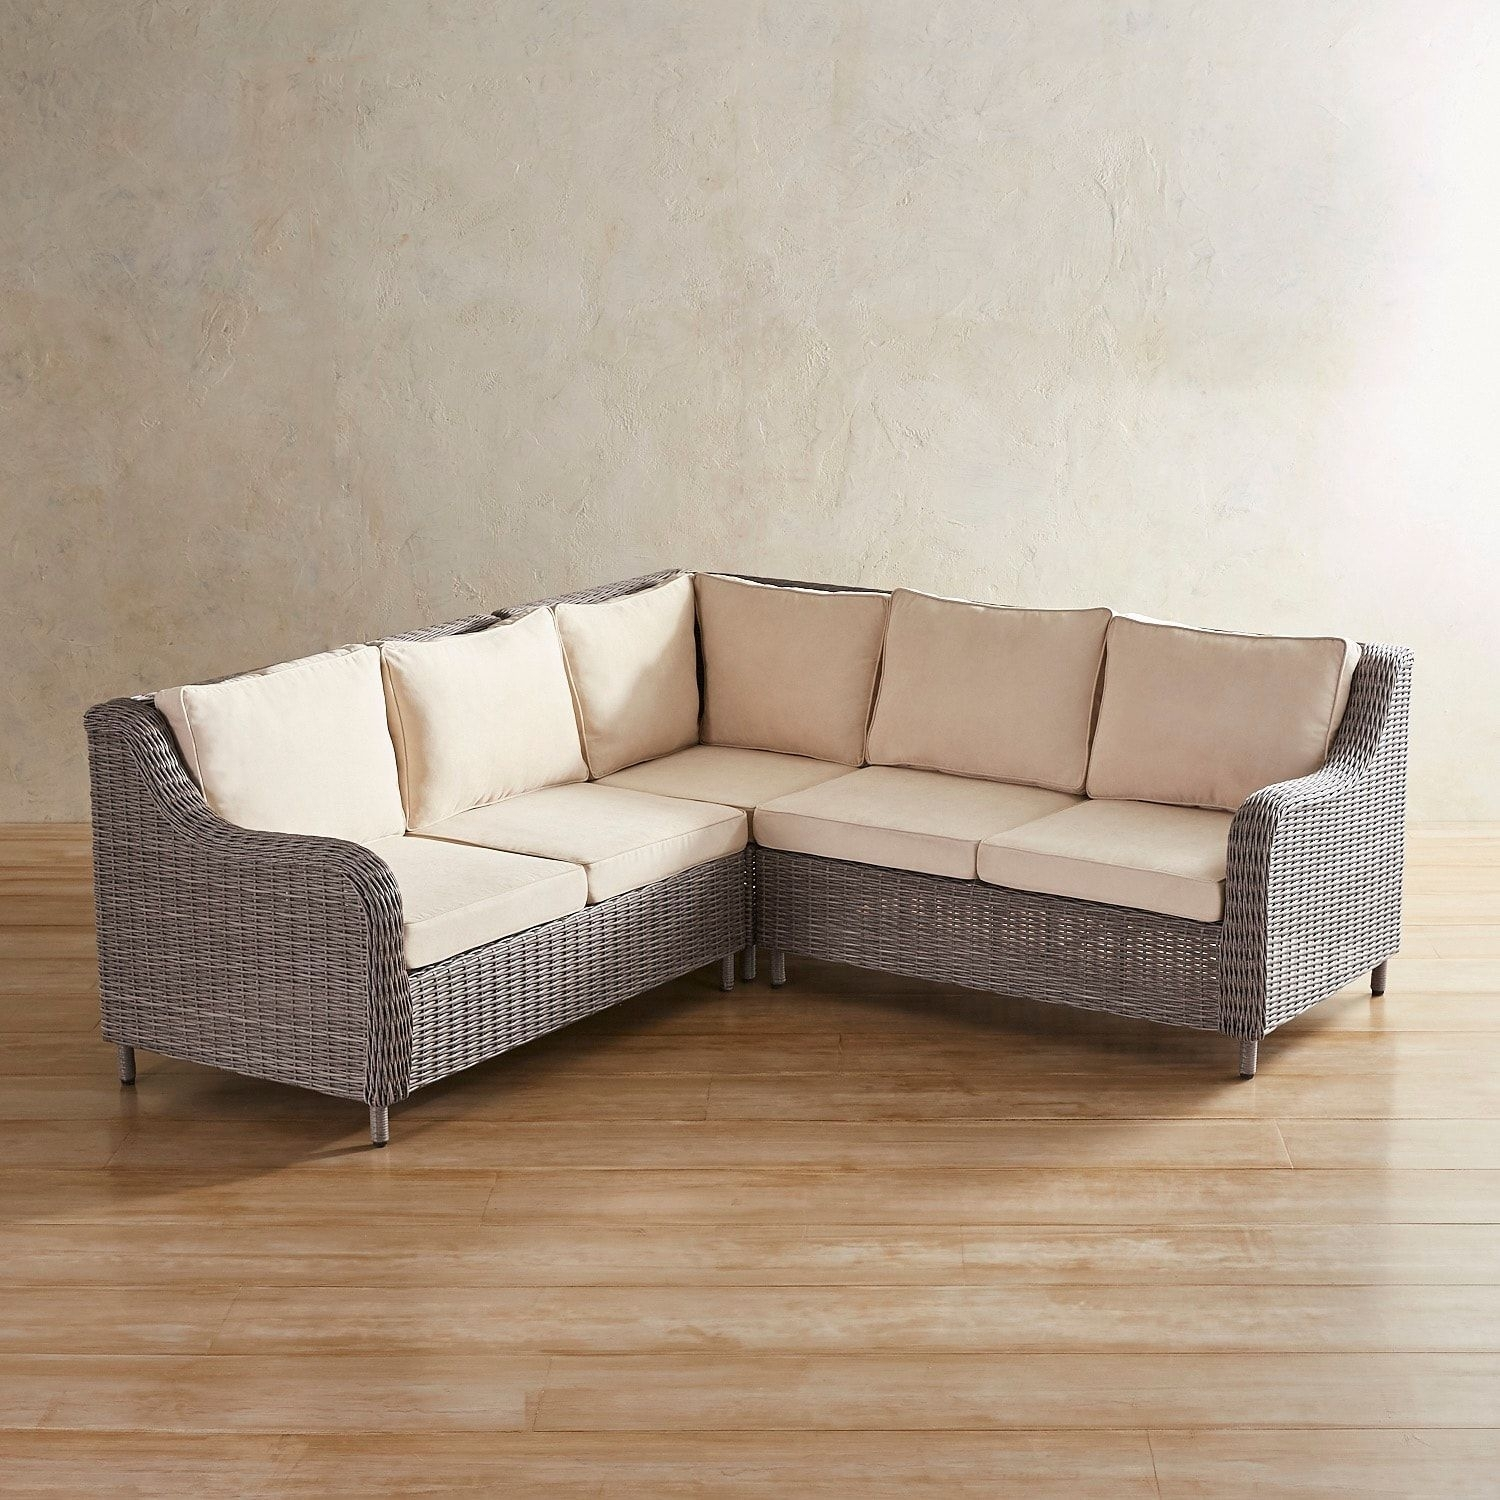 Crestview Gray 3 Piece Sectional | *patio Furniture > Sectionals Intended For Blaine 3 Piece Sectionals (View 8 of 25)